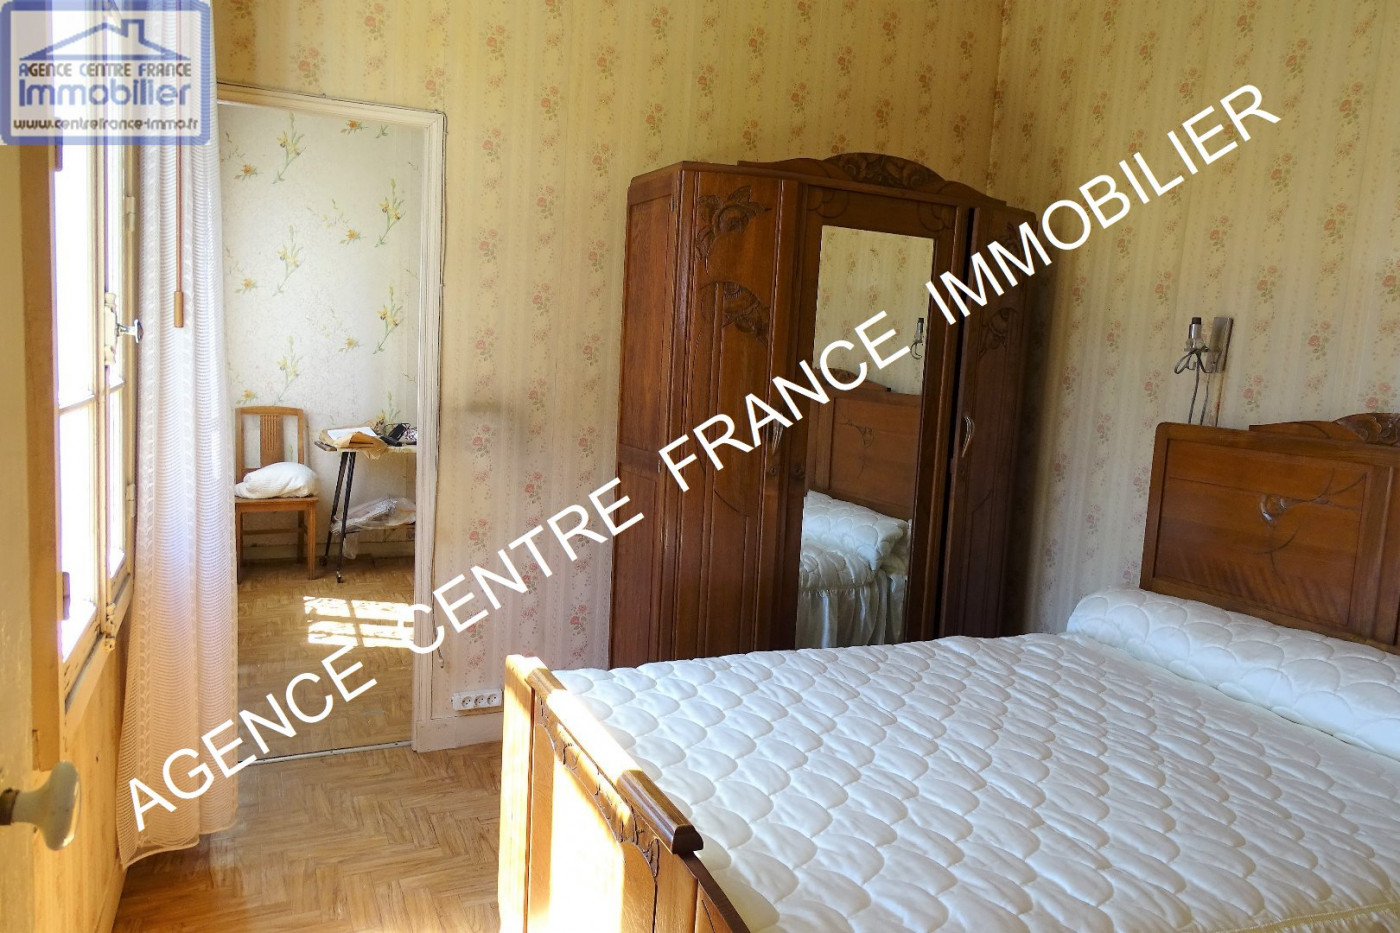 A vendre Bourges 030011149 Agence centre france immobilier